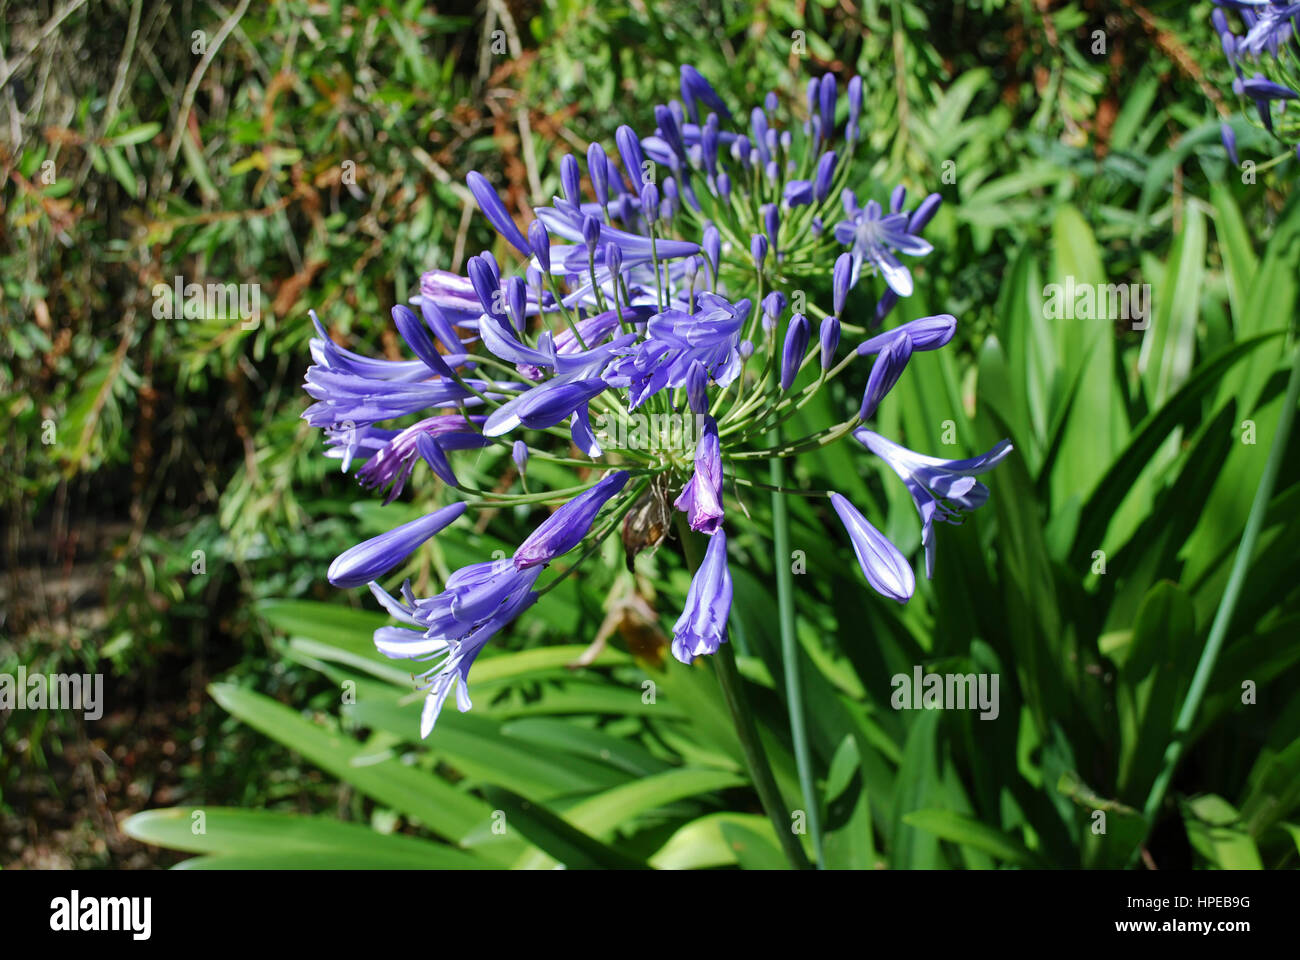 Lily of the nile agapanthus praecox subsp praecox azure bloom lily of the nile agapanthus praecox subsp praecox azure bloom blue flowers izmirmasajfo